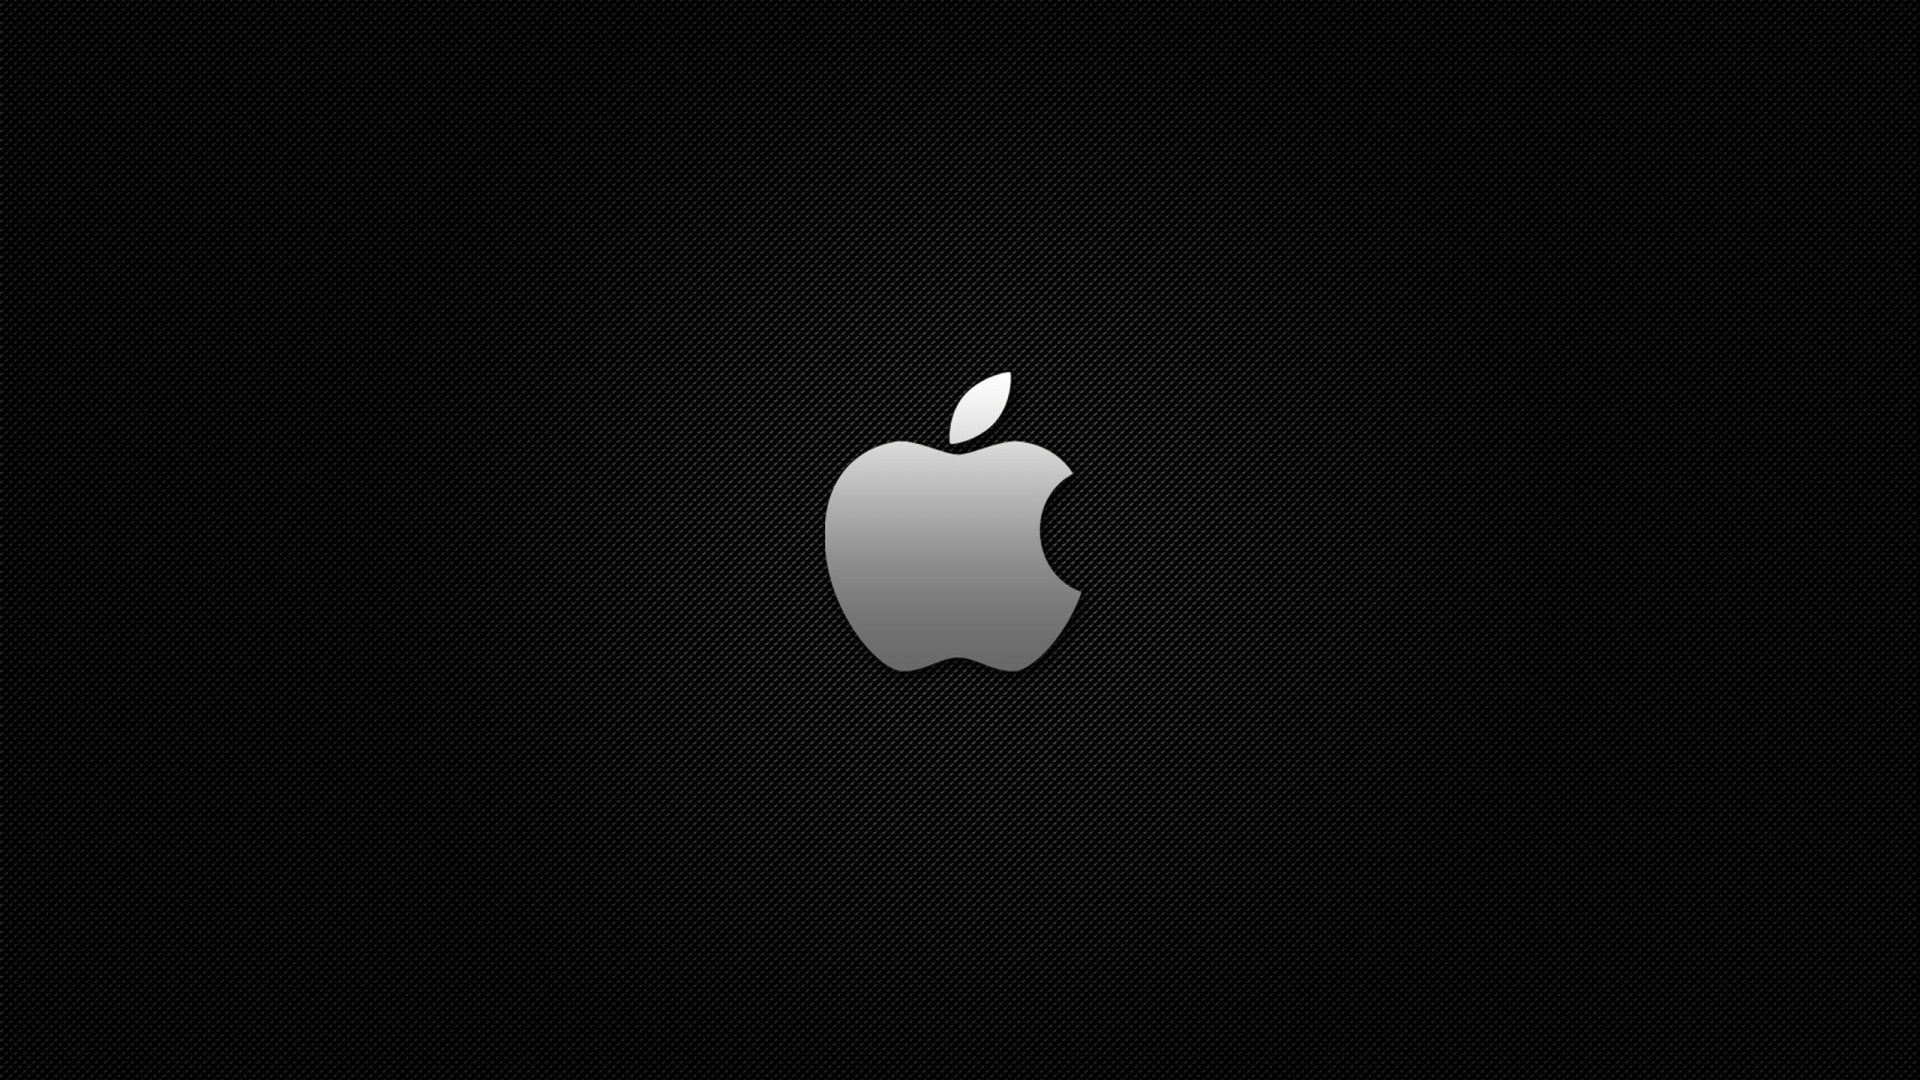 Black Apple Logo Wallpapers HD Wallpaper With Images